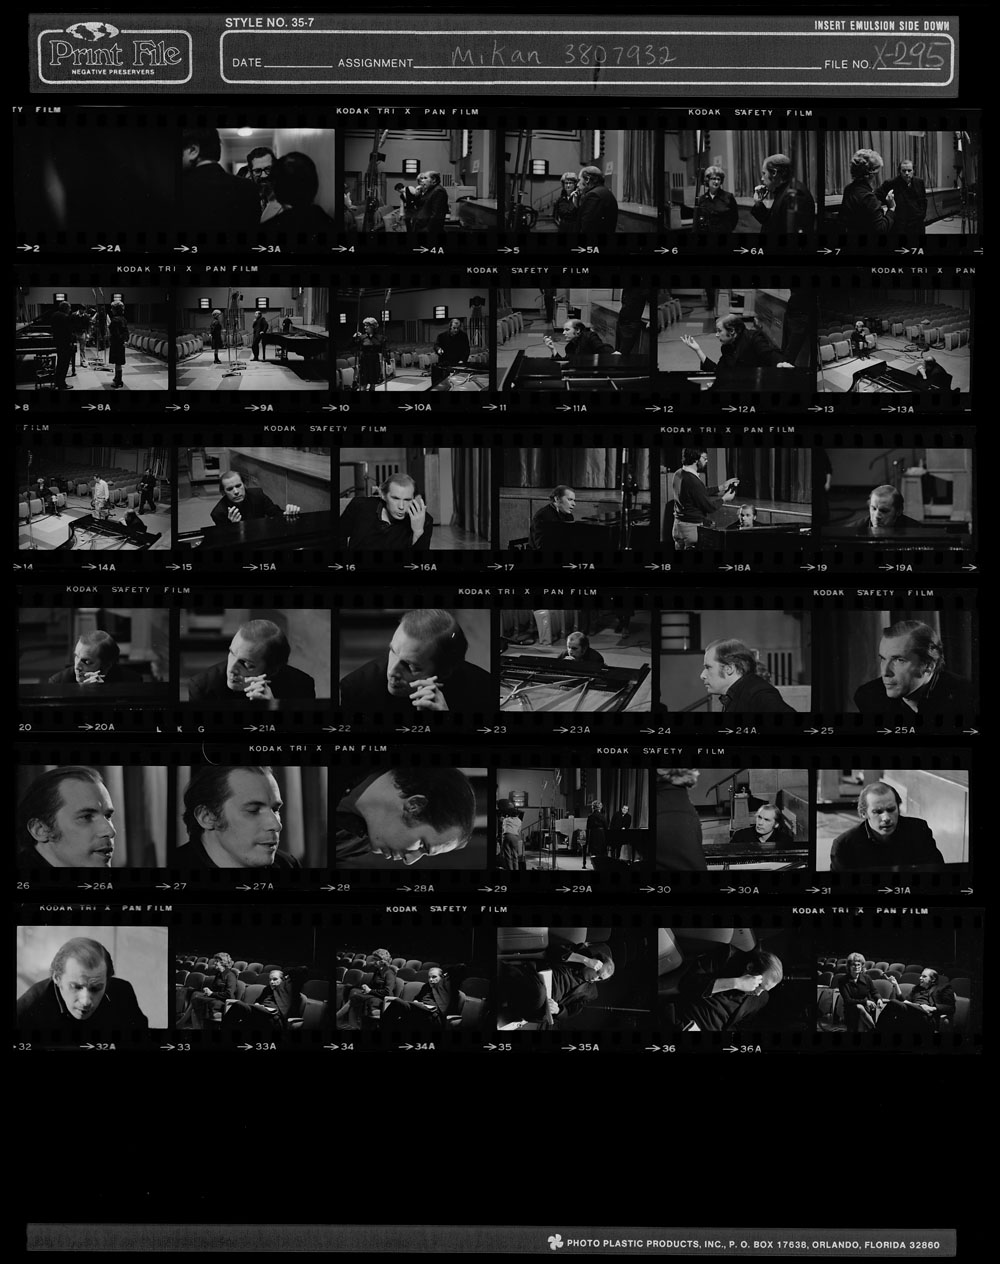 A series of shots from a filming showing a man at a piano in an auditorium.